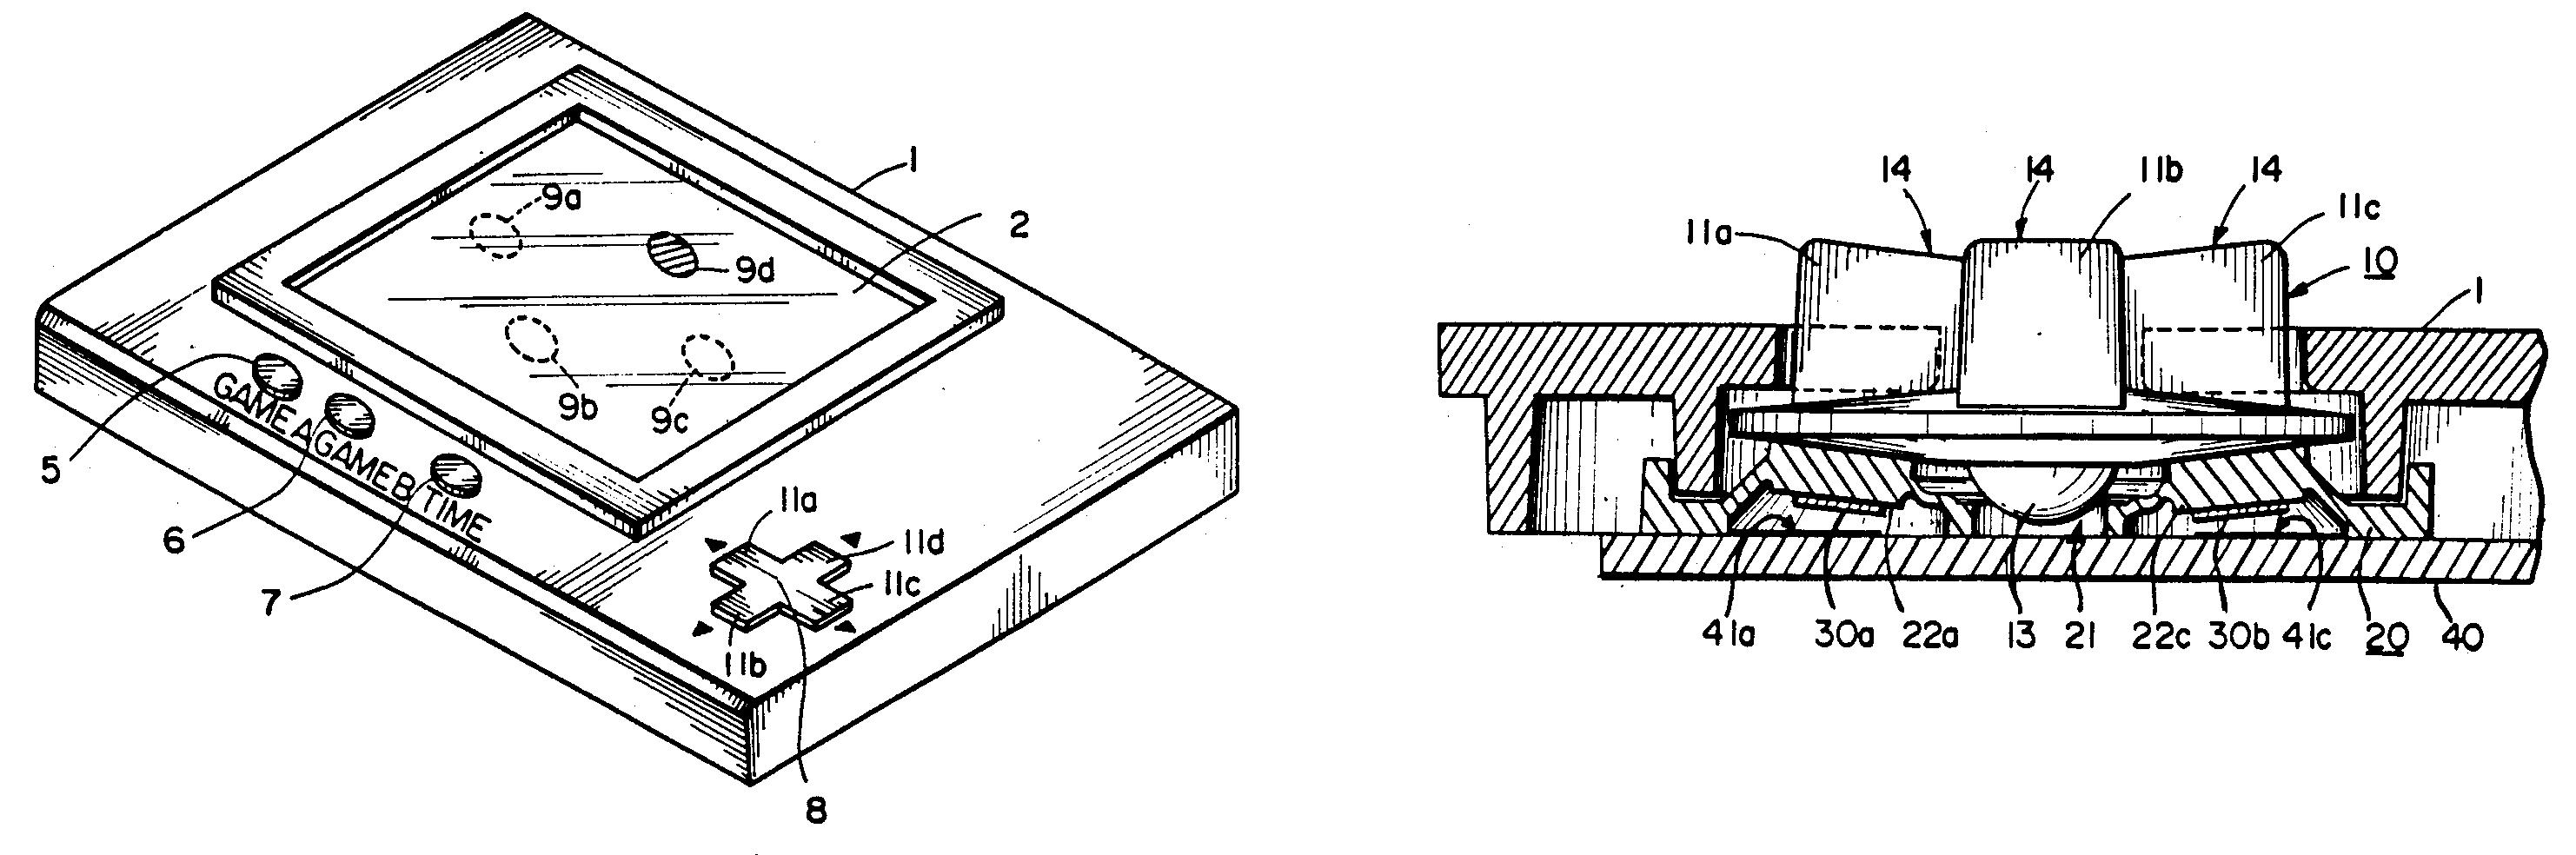 Illustrations from the US patent.